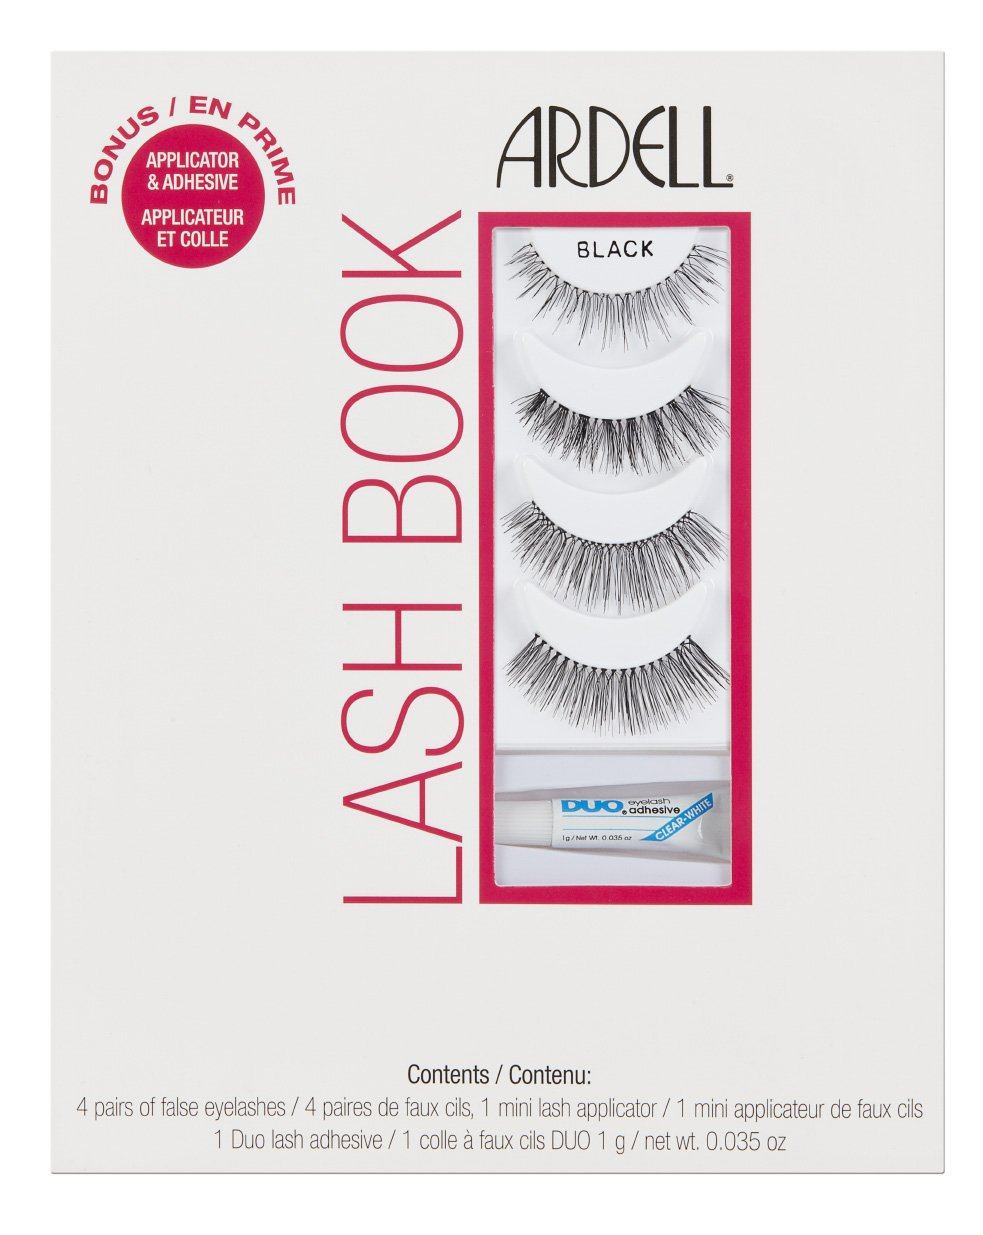 70b290b9349 Ardell Lashbook with Free DUO Glue: Amazon.co.uk: Beauty